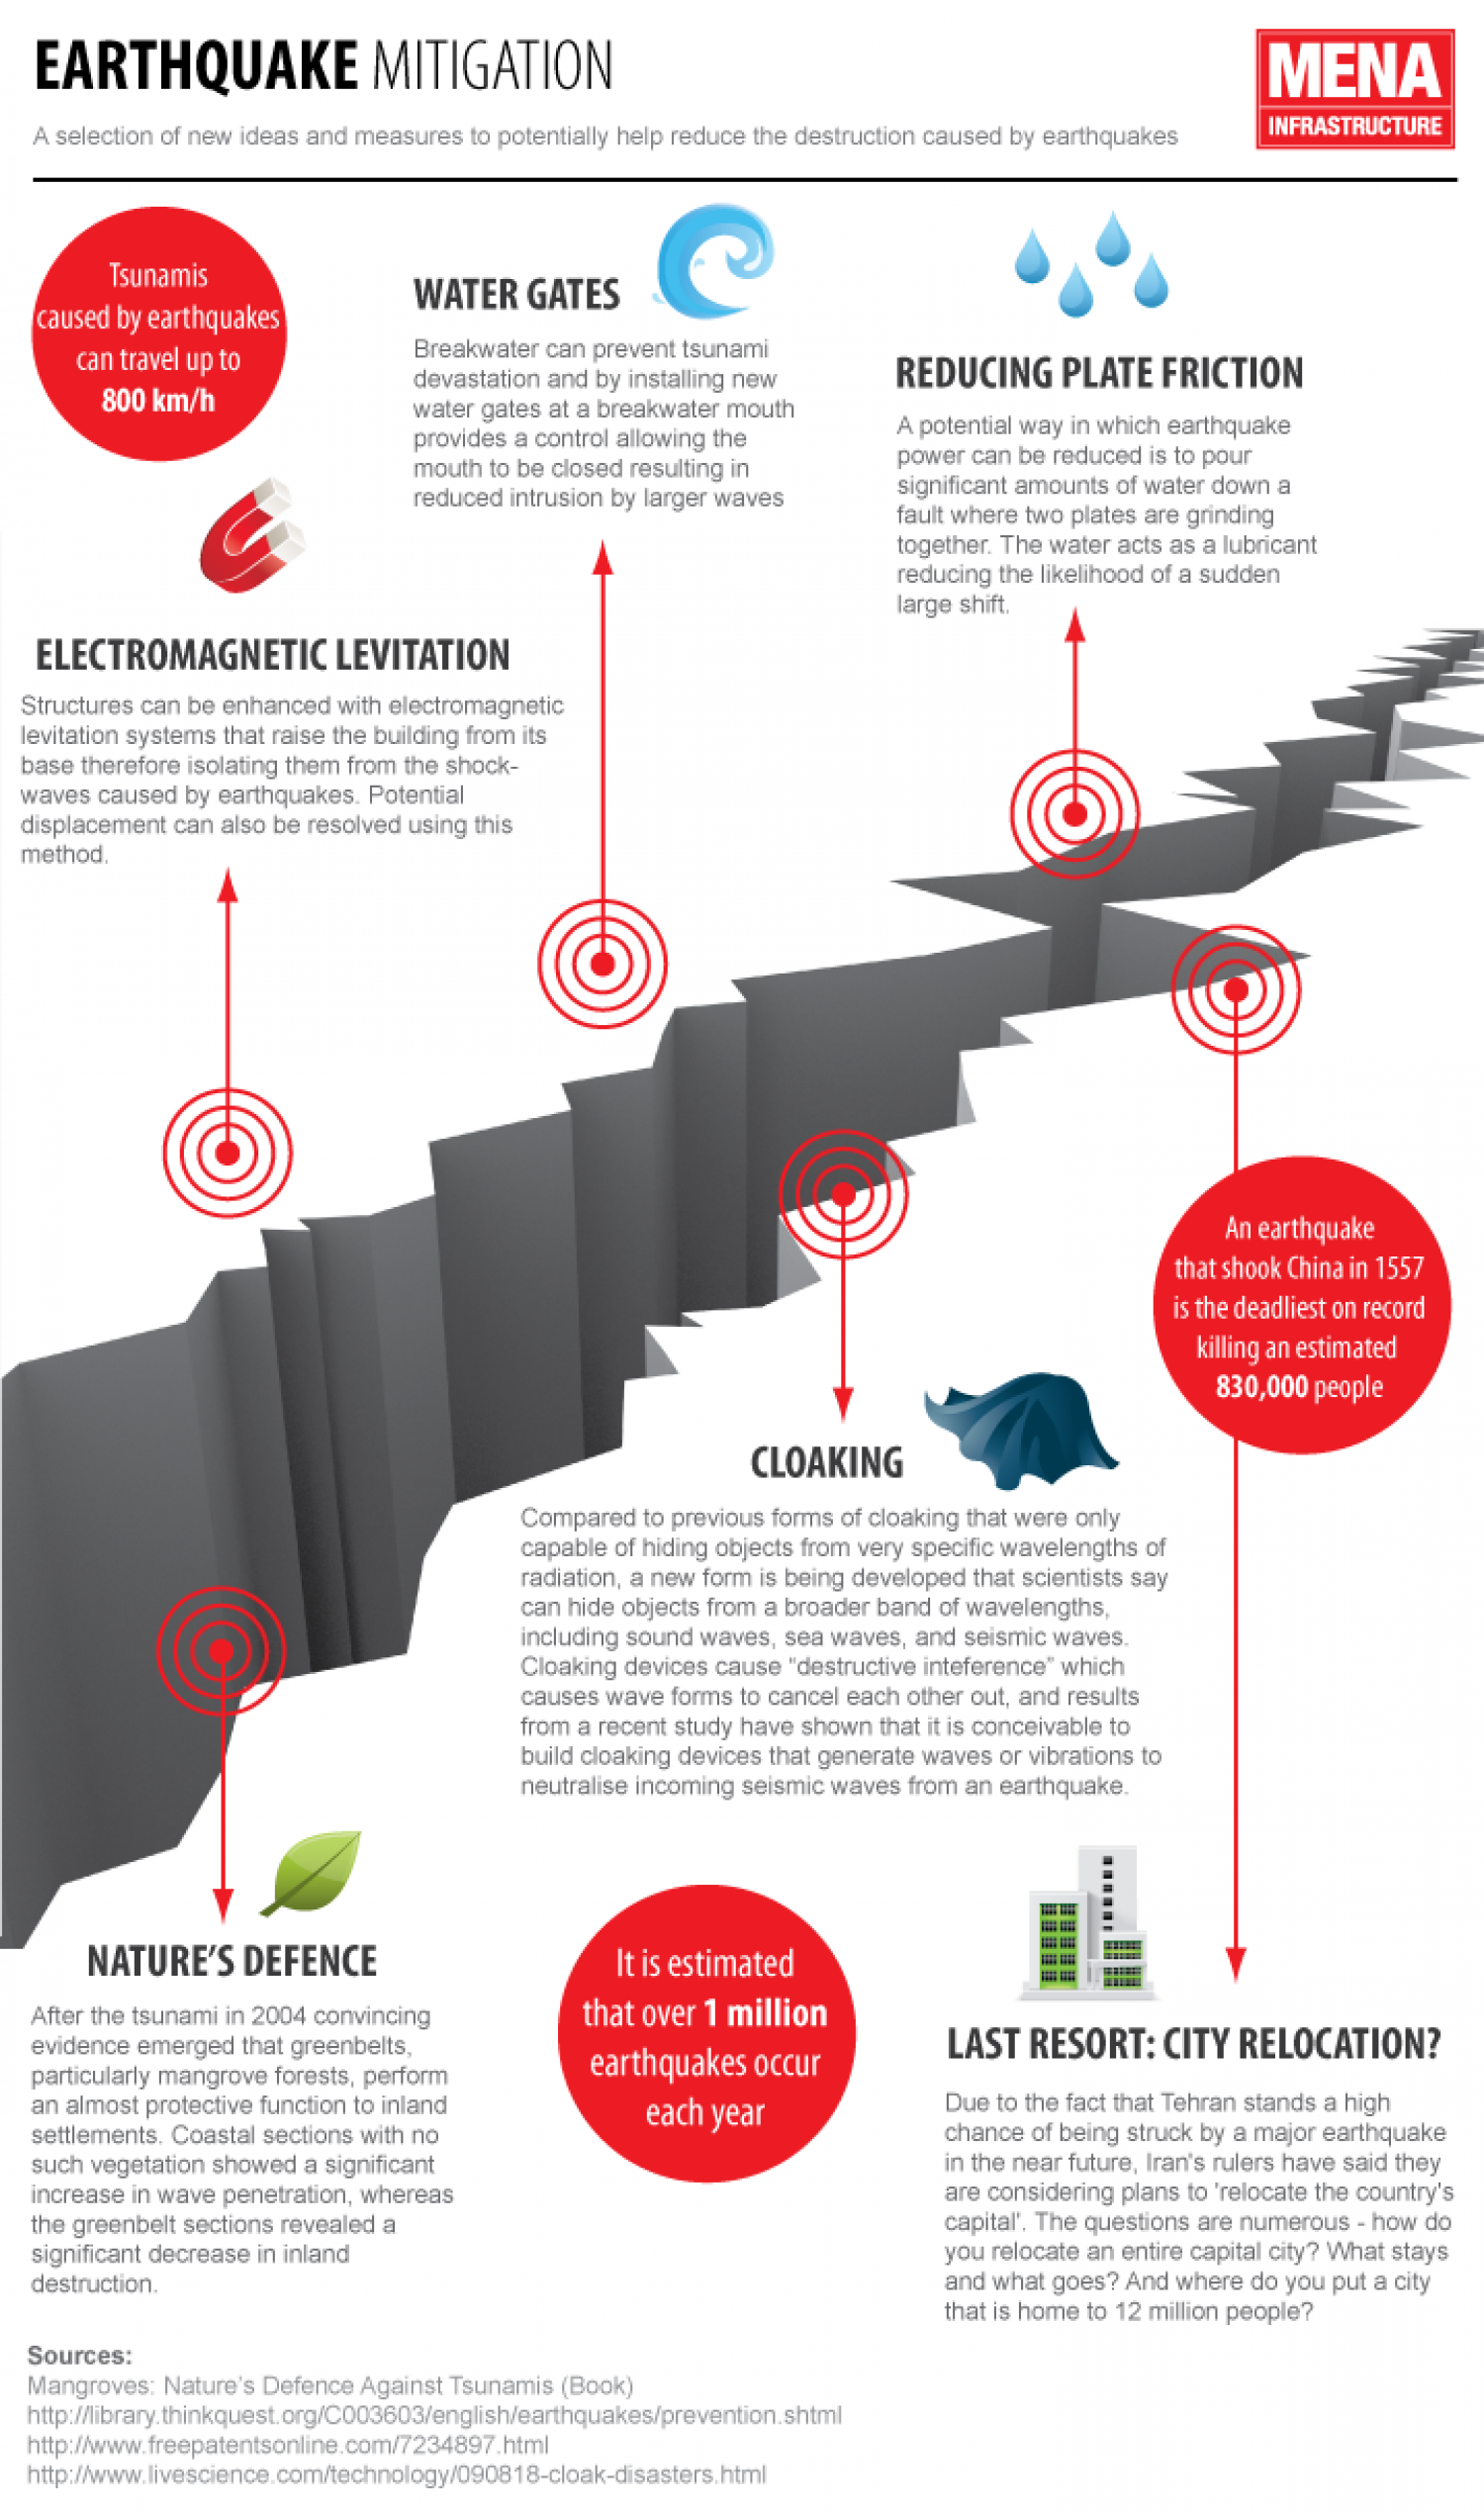 How can the Middle East improve seismic monitoring? Infographic